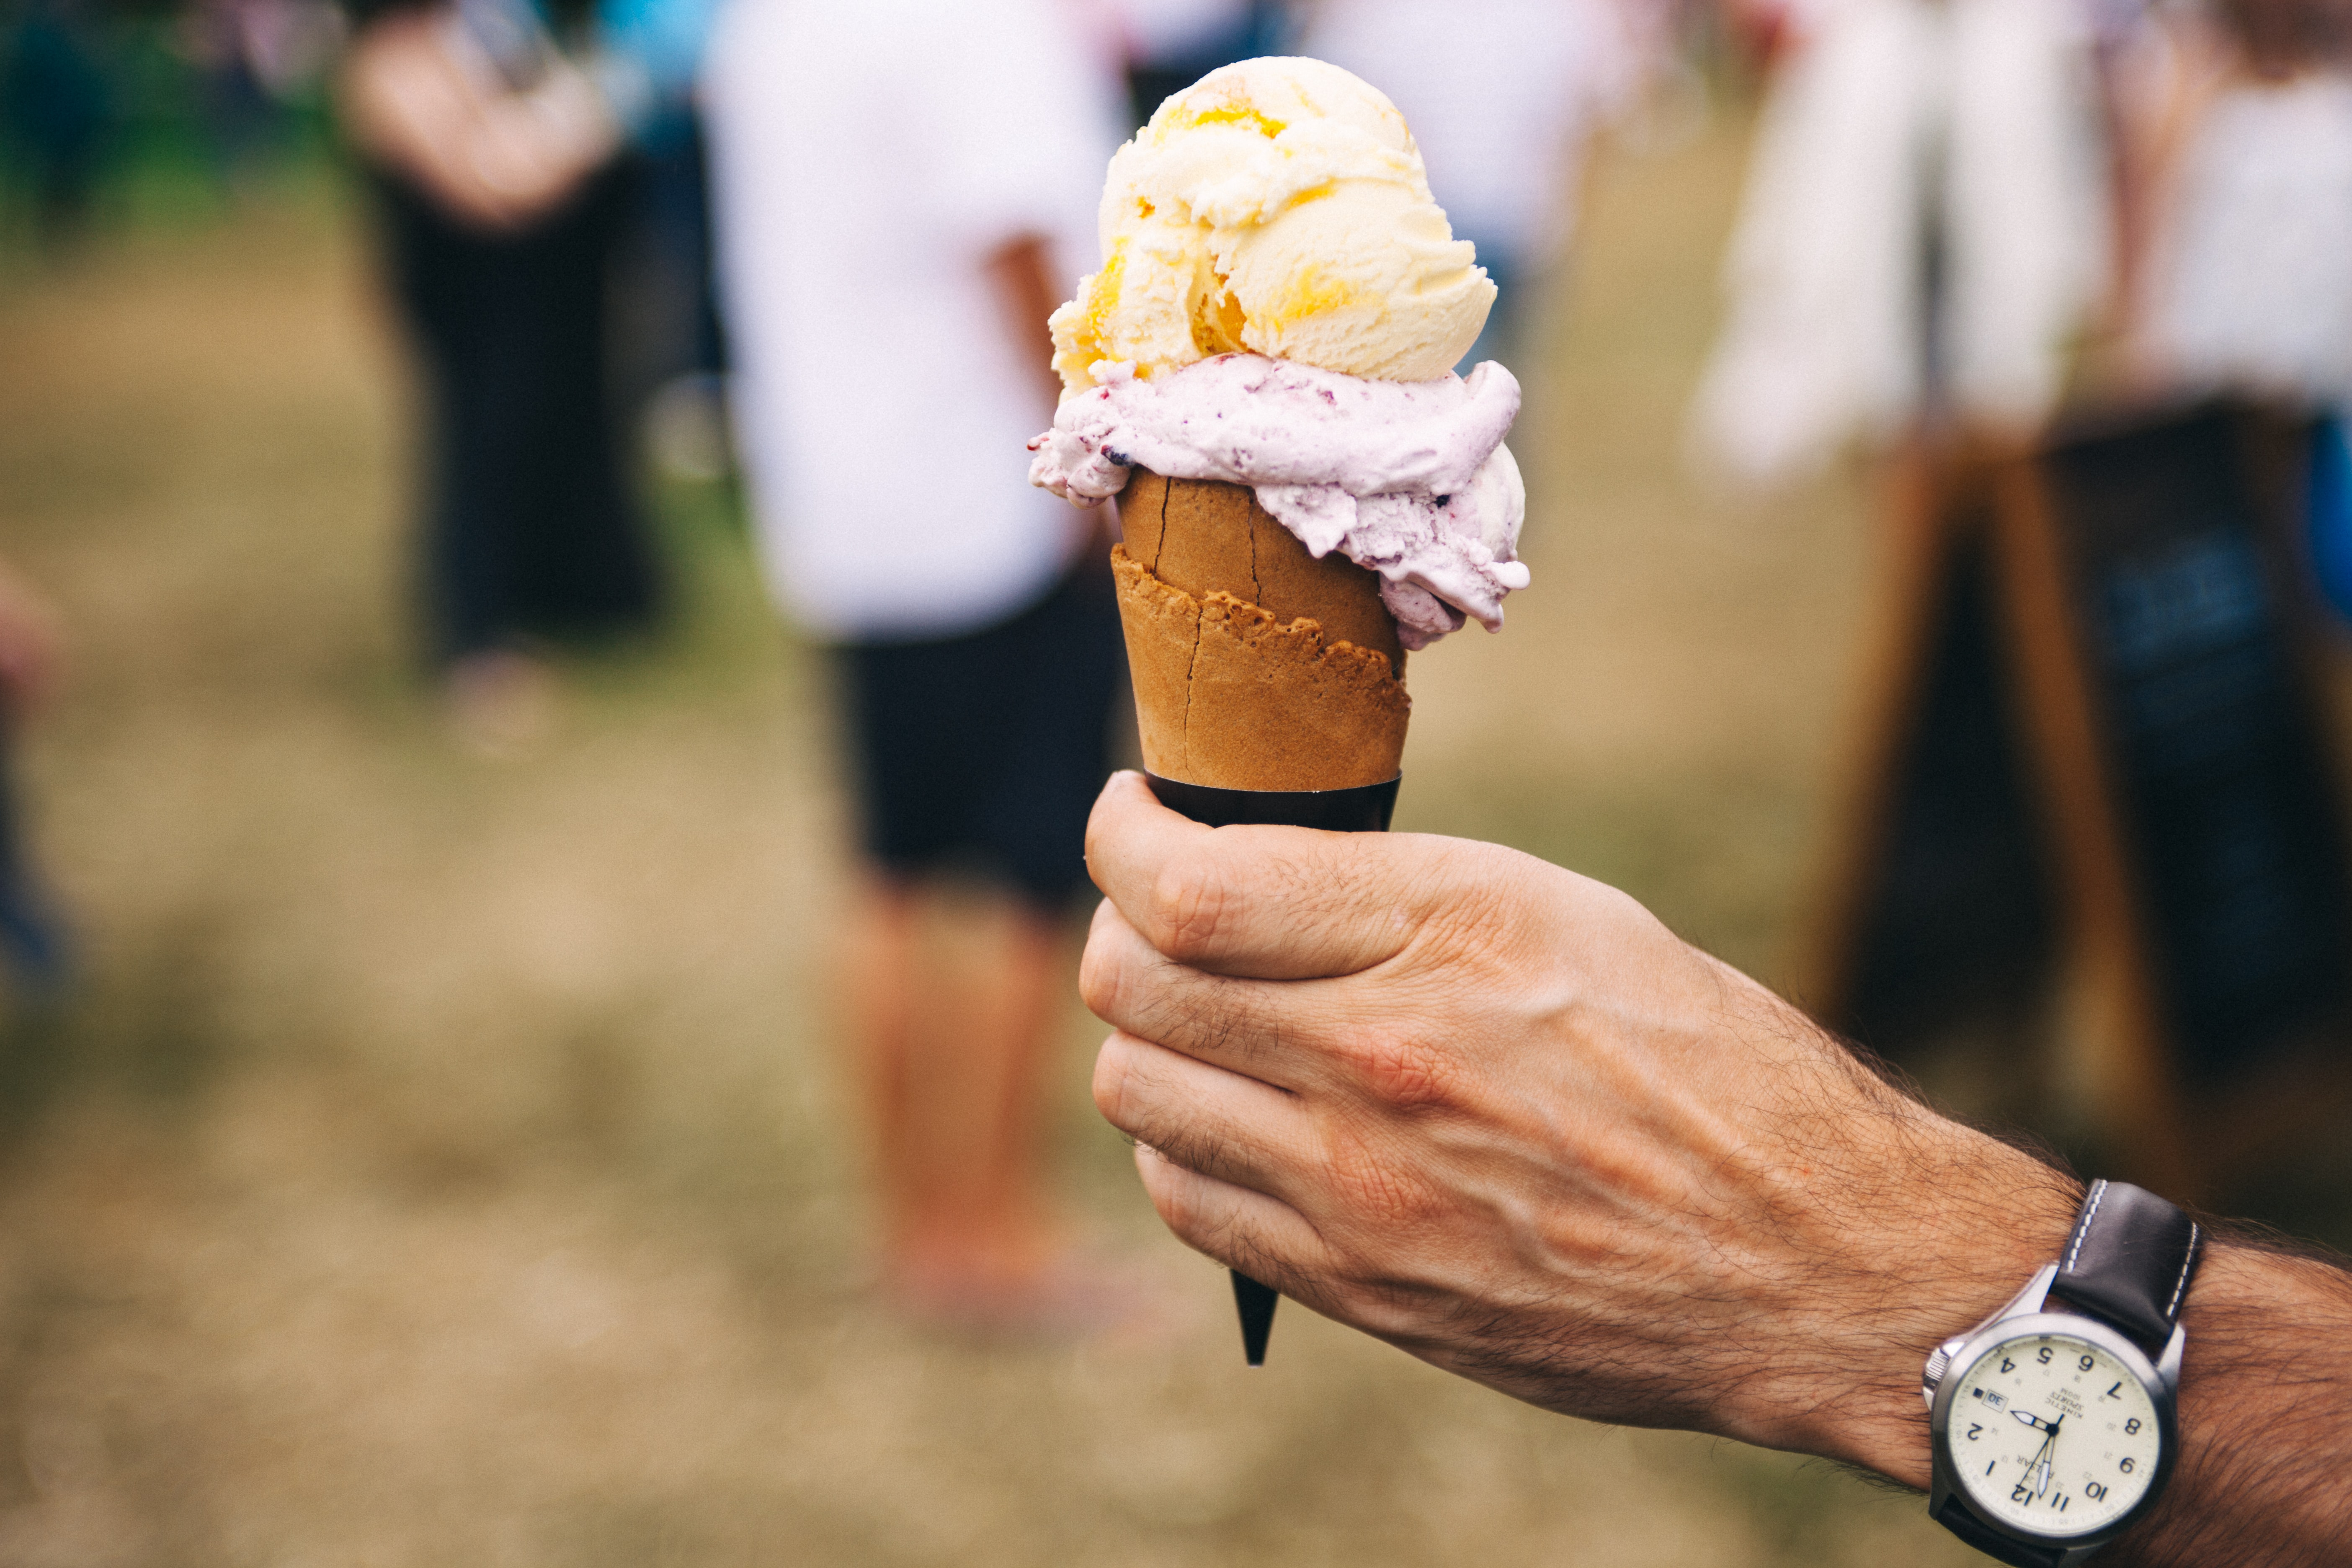 Hand hold an ice cream cone with two scoops at a festival